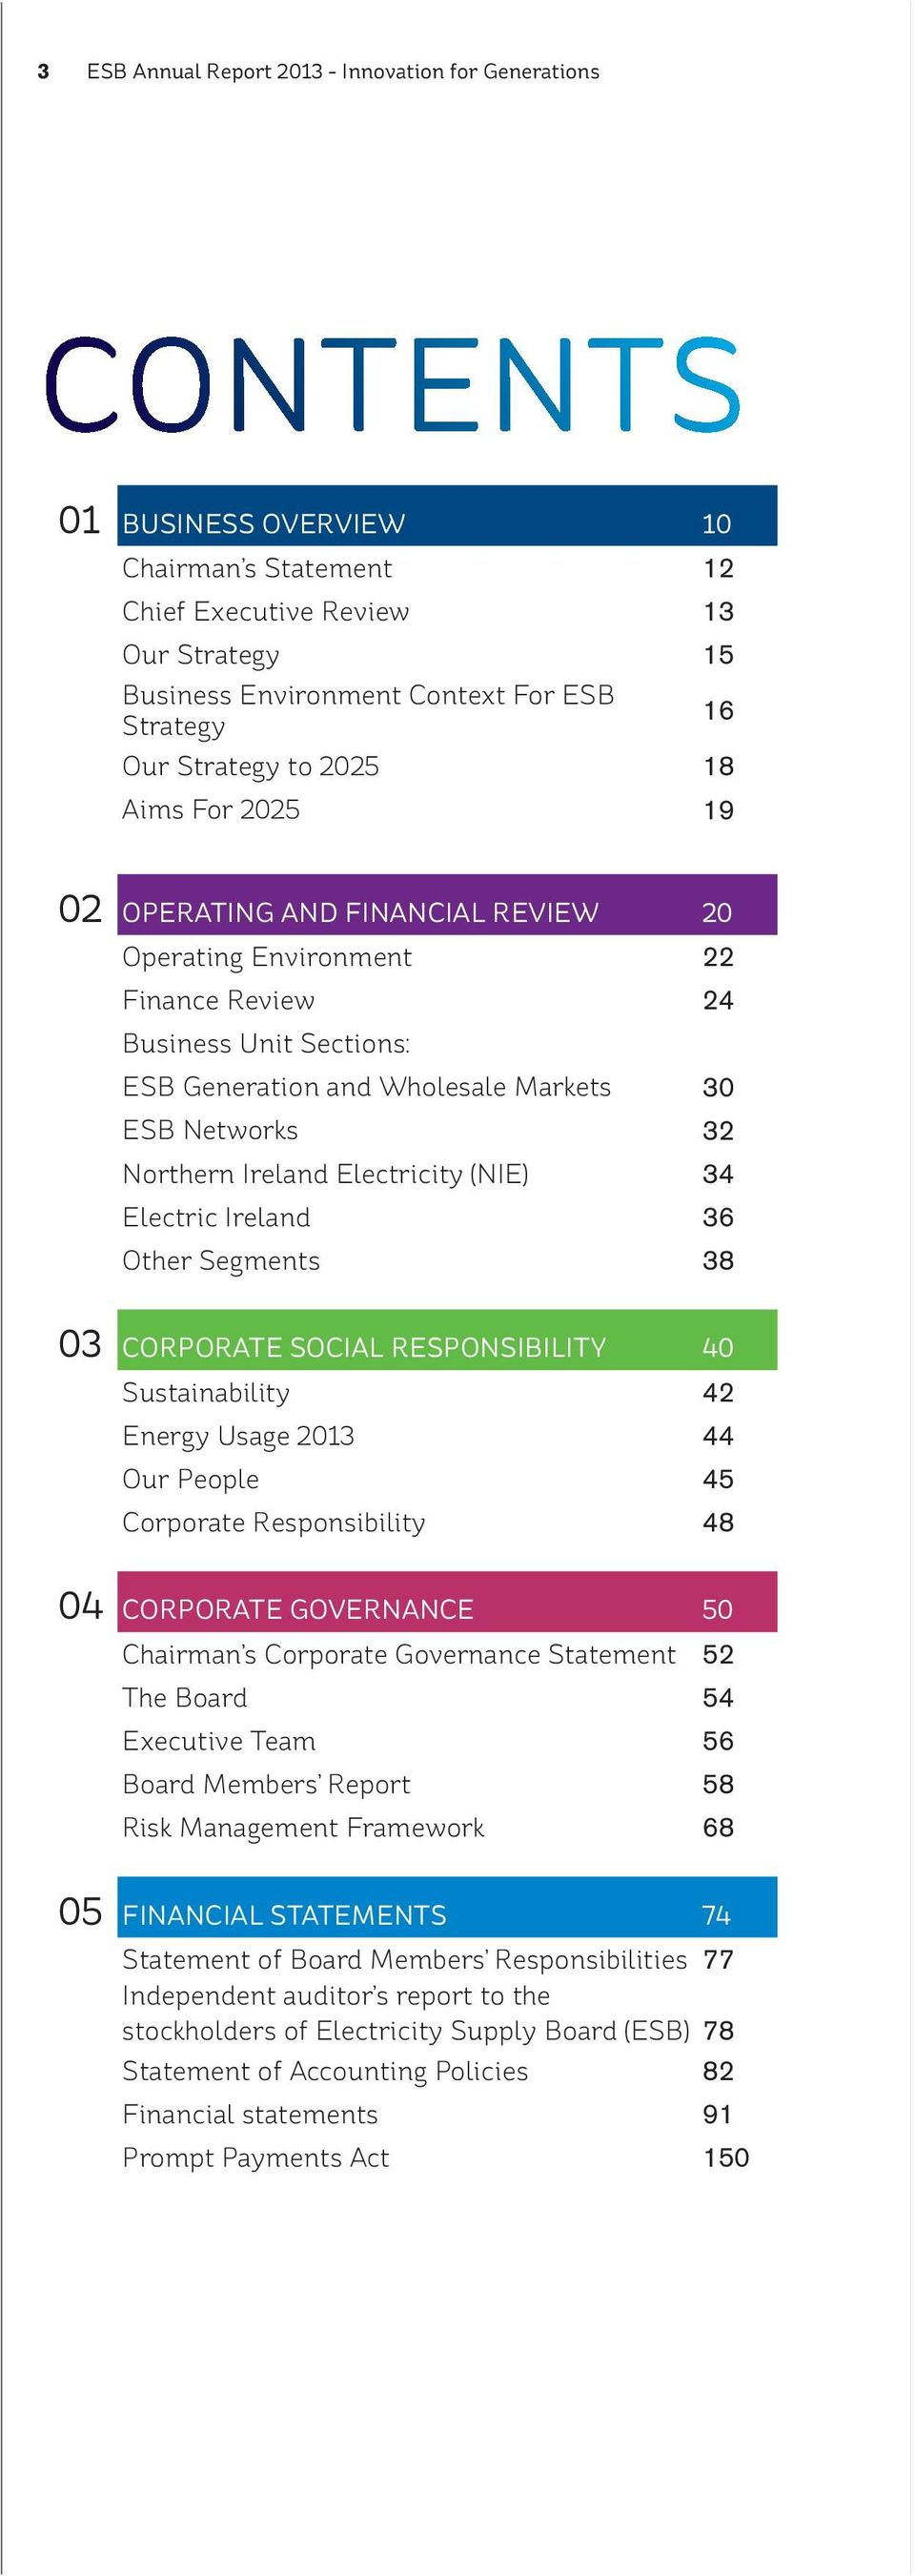 34 Electric Ireland 36 Other Segments 38 SOCIAL 40 Sustainability 42 Energy Usage 23 44 Our People 45 Corporate Responsibility 48 50 Chairman s Corporate Governance Statement 52 The Board 54